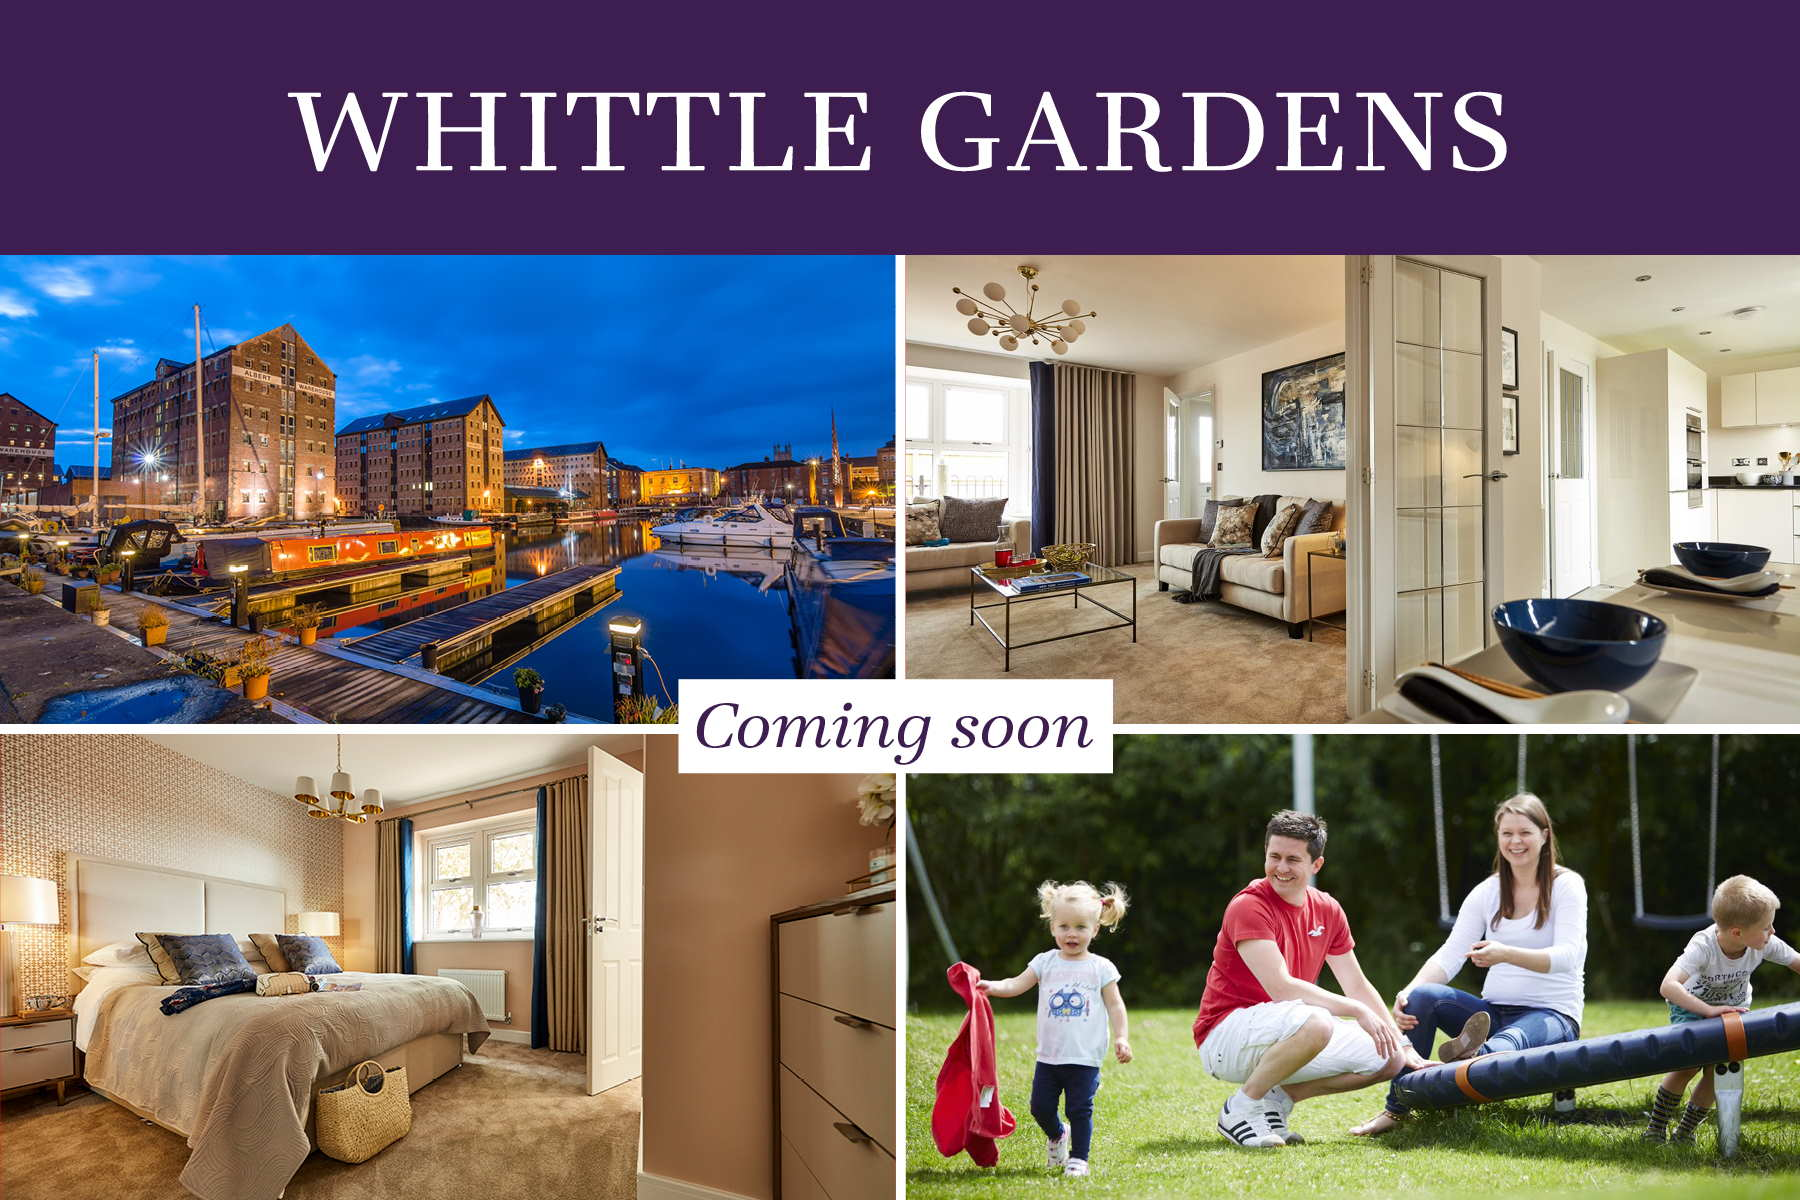 Whittle Gardens coming soon